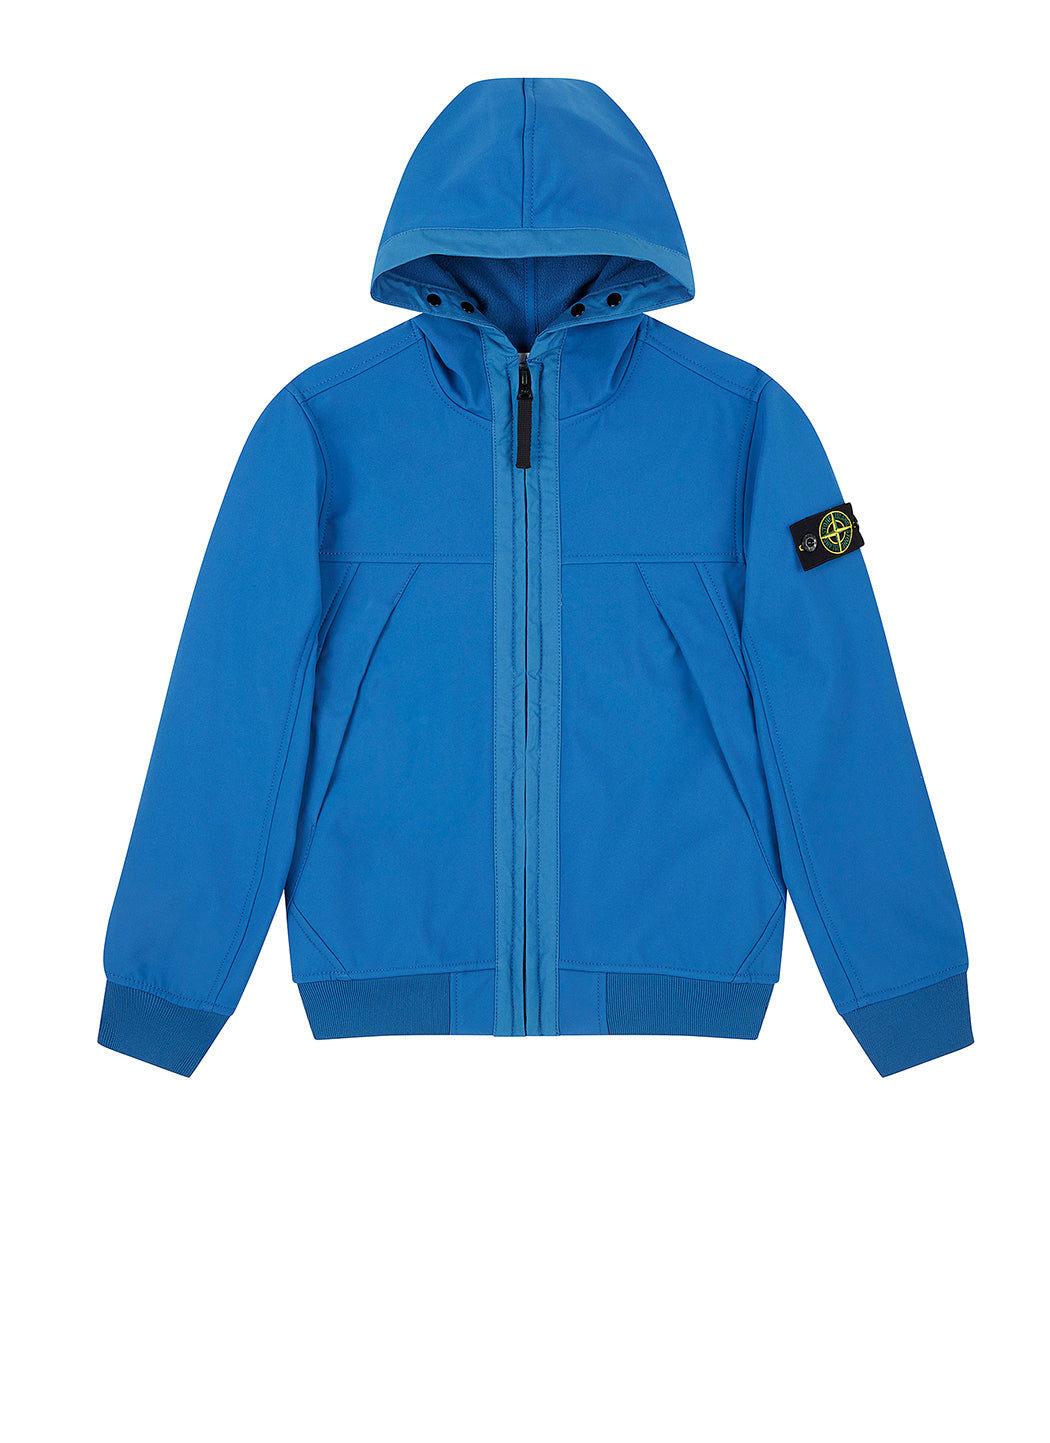 Q0130 SOFT SHELL-R Jacket in Periwinkle